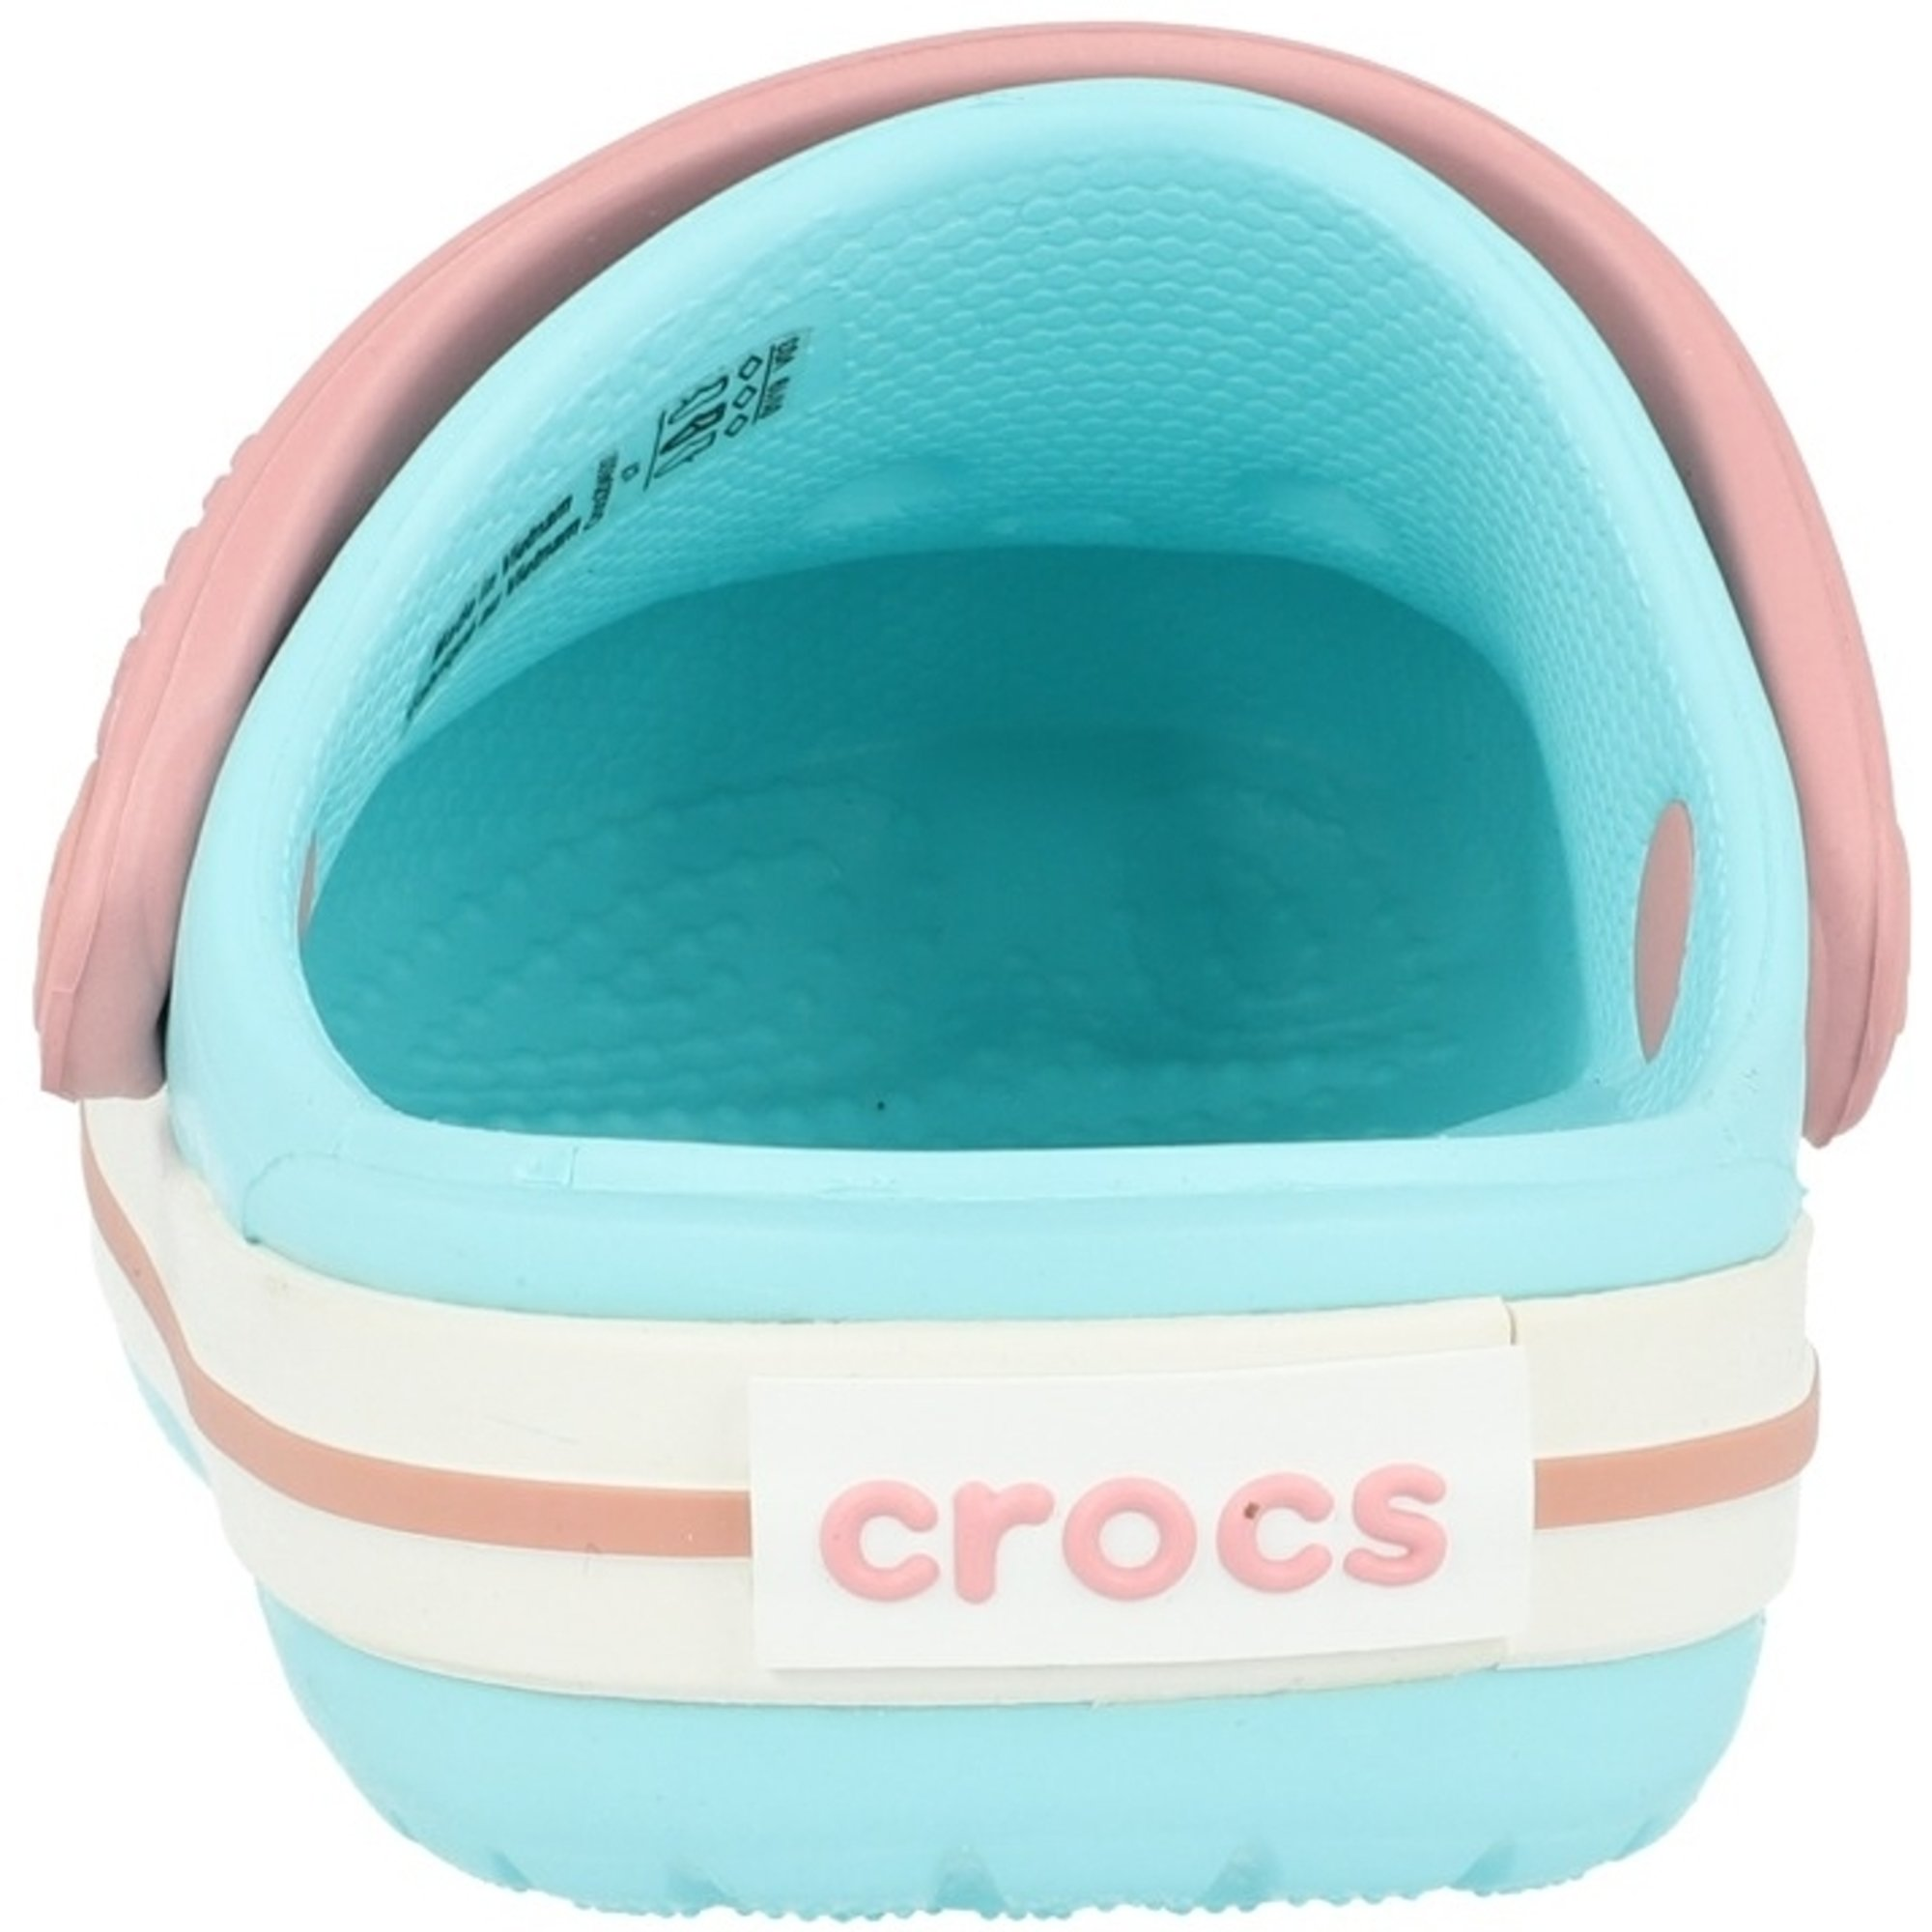 Crocs Kids Crocband Clog Ice Blue/White Croslite